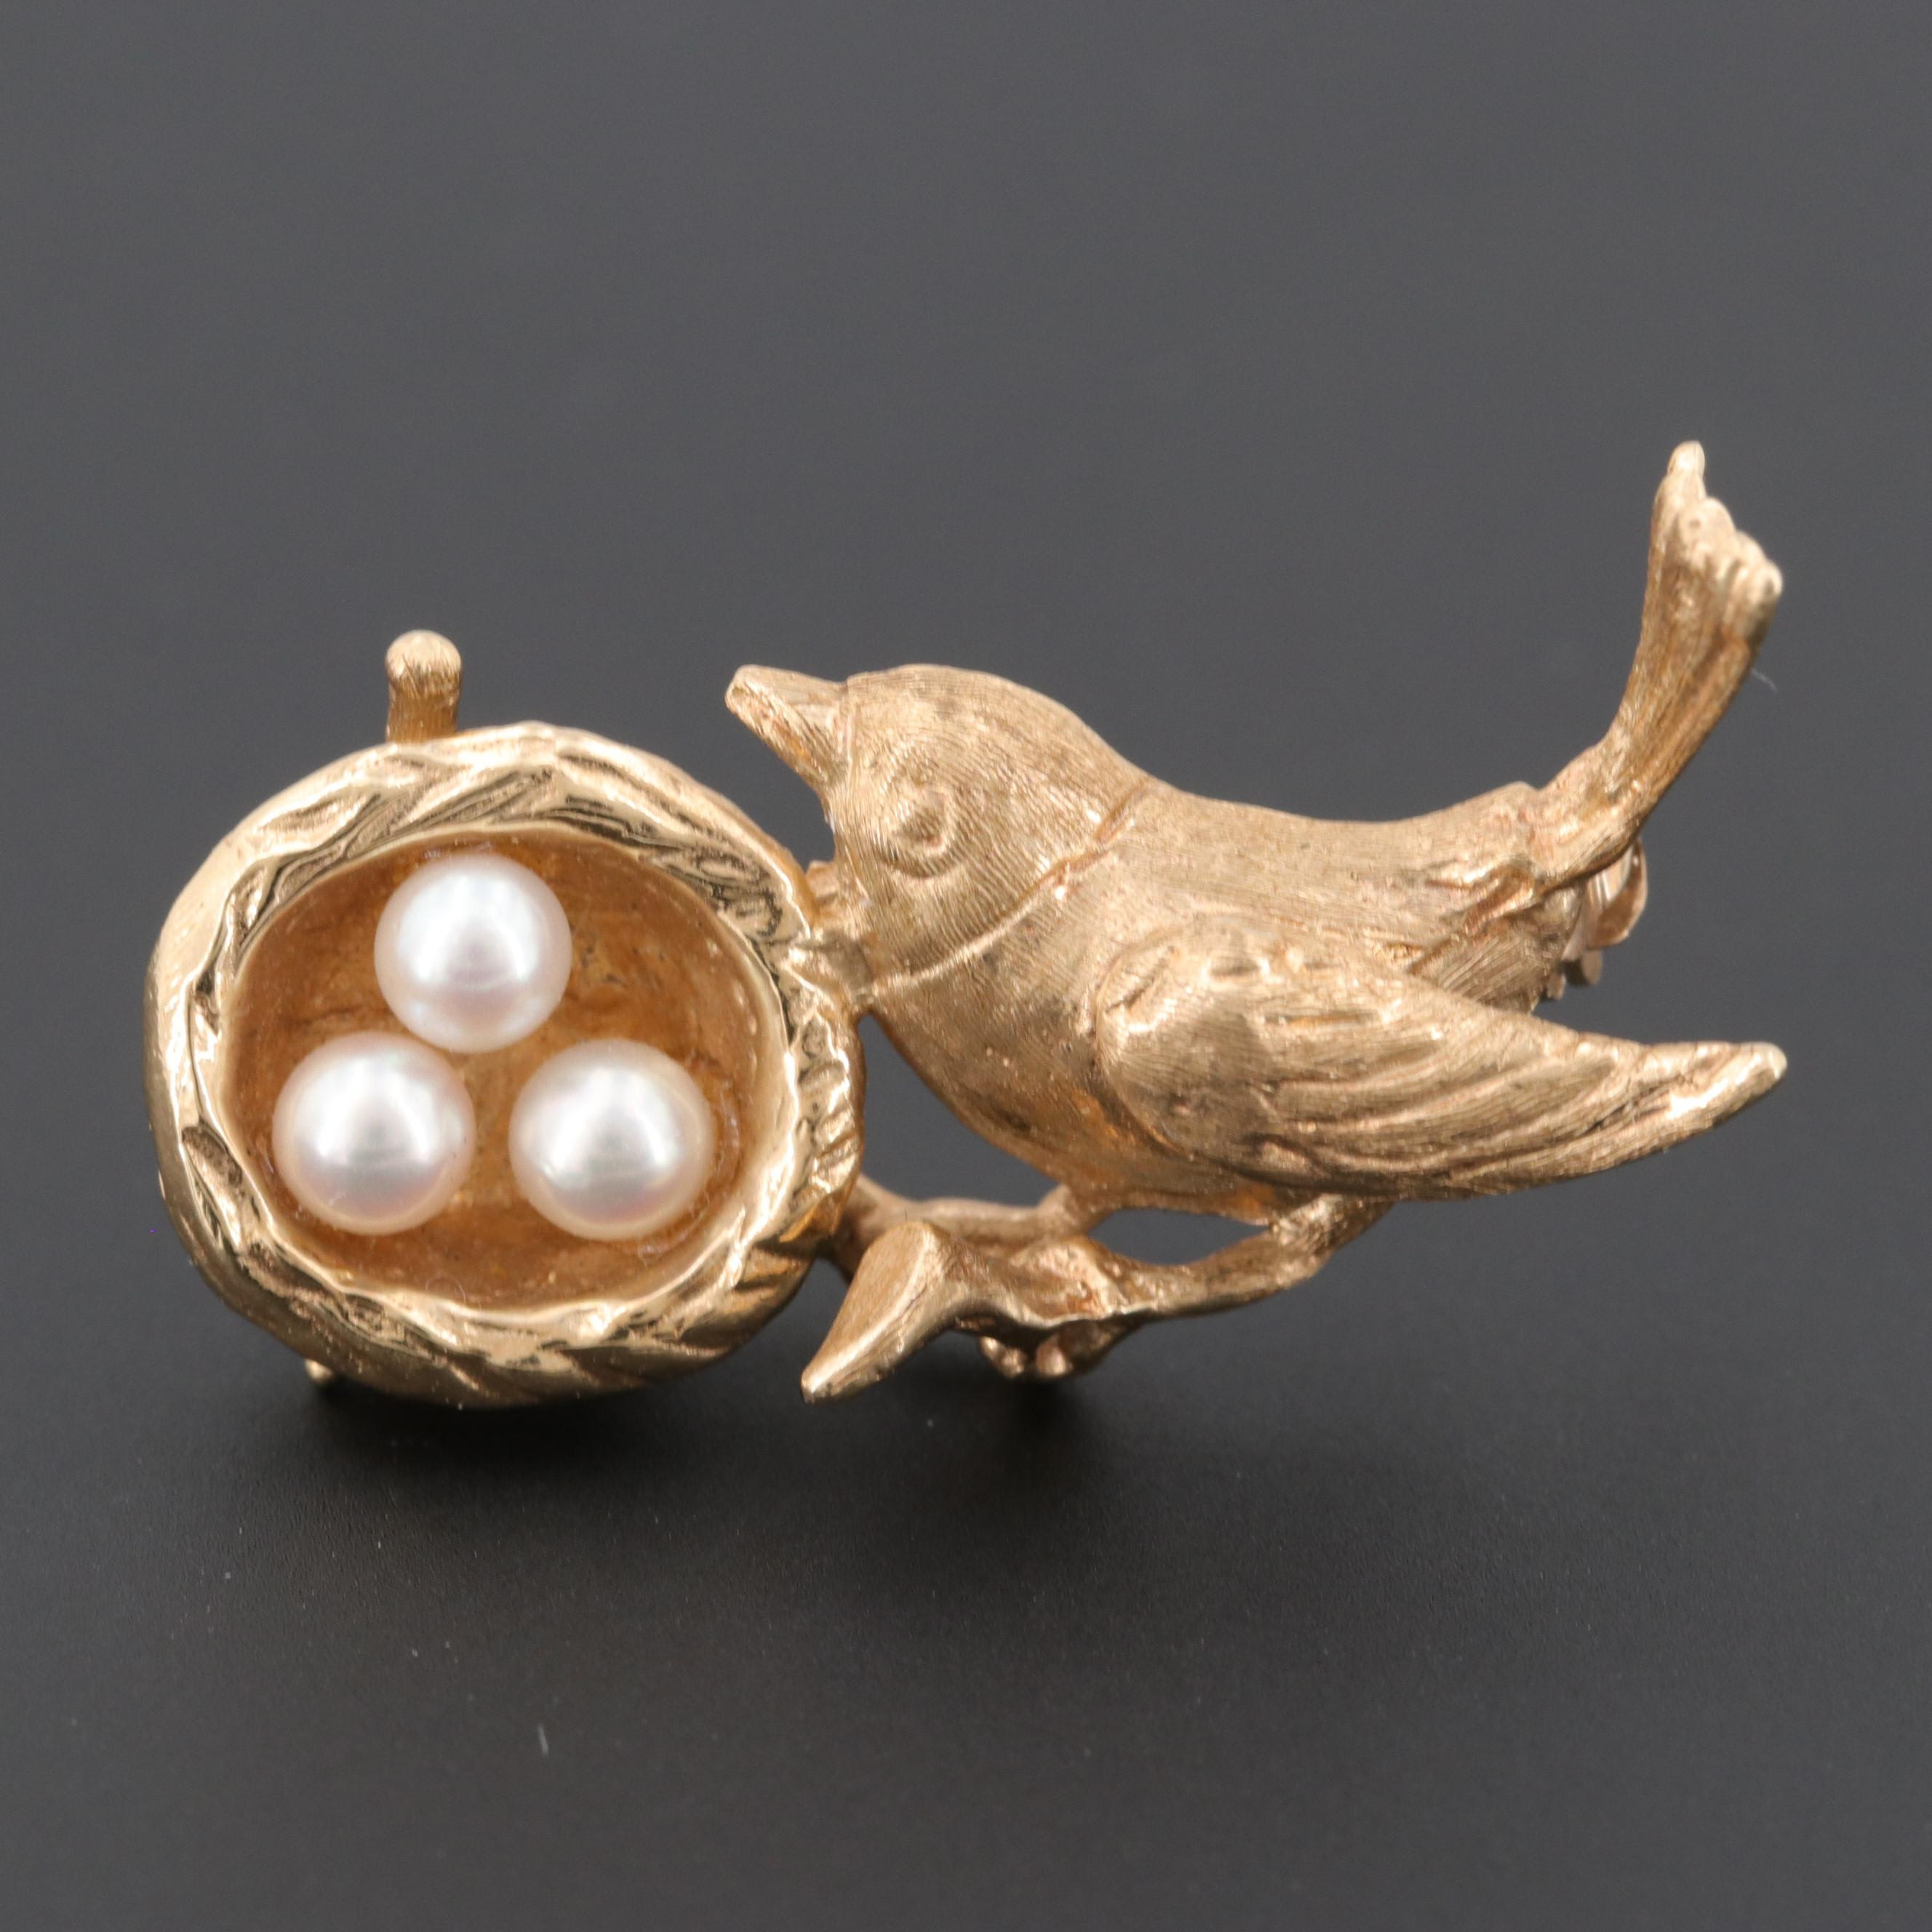 14K Yellow Gold Cultured Pearl Bird and Nest Brooch